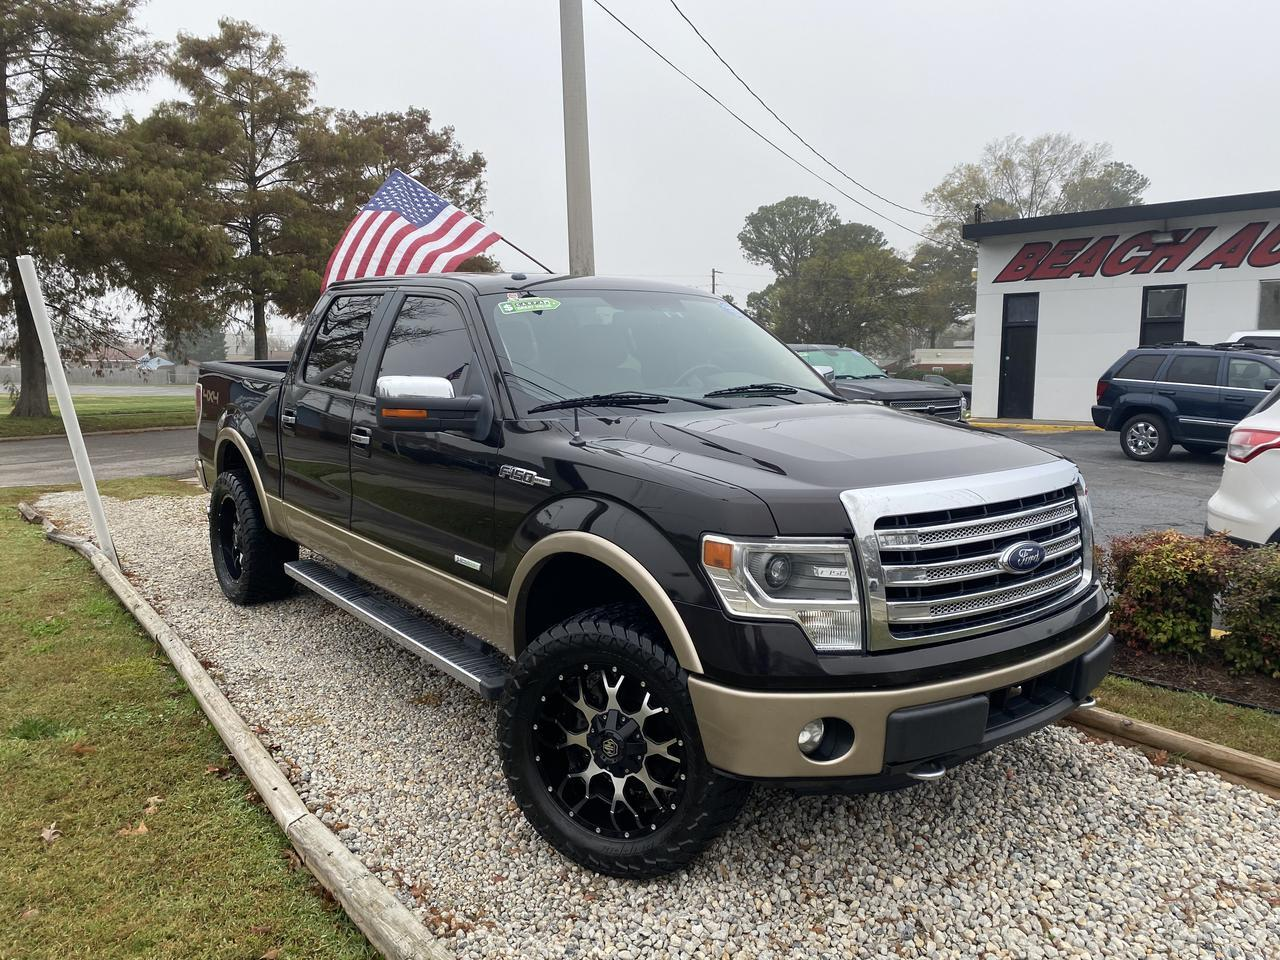 2013 FORD F-150 LARIAT SUPERCREW 4X4, WARRANTY, LEATHER, NAV, HEATED/COOLED SEATS, SONY SOUND!